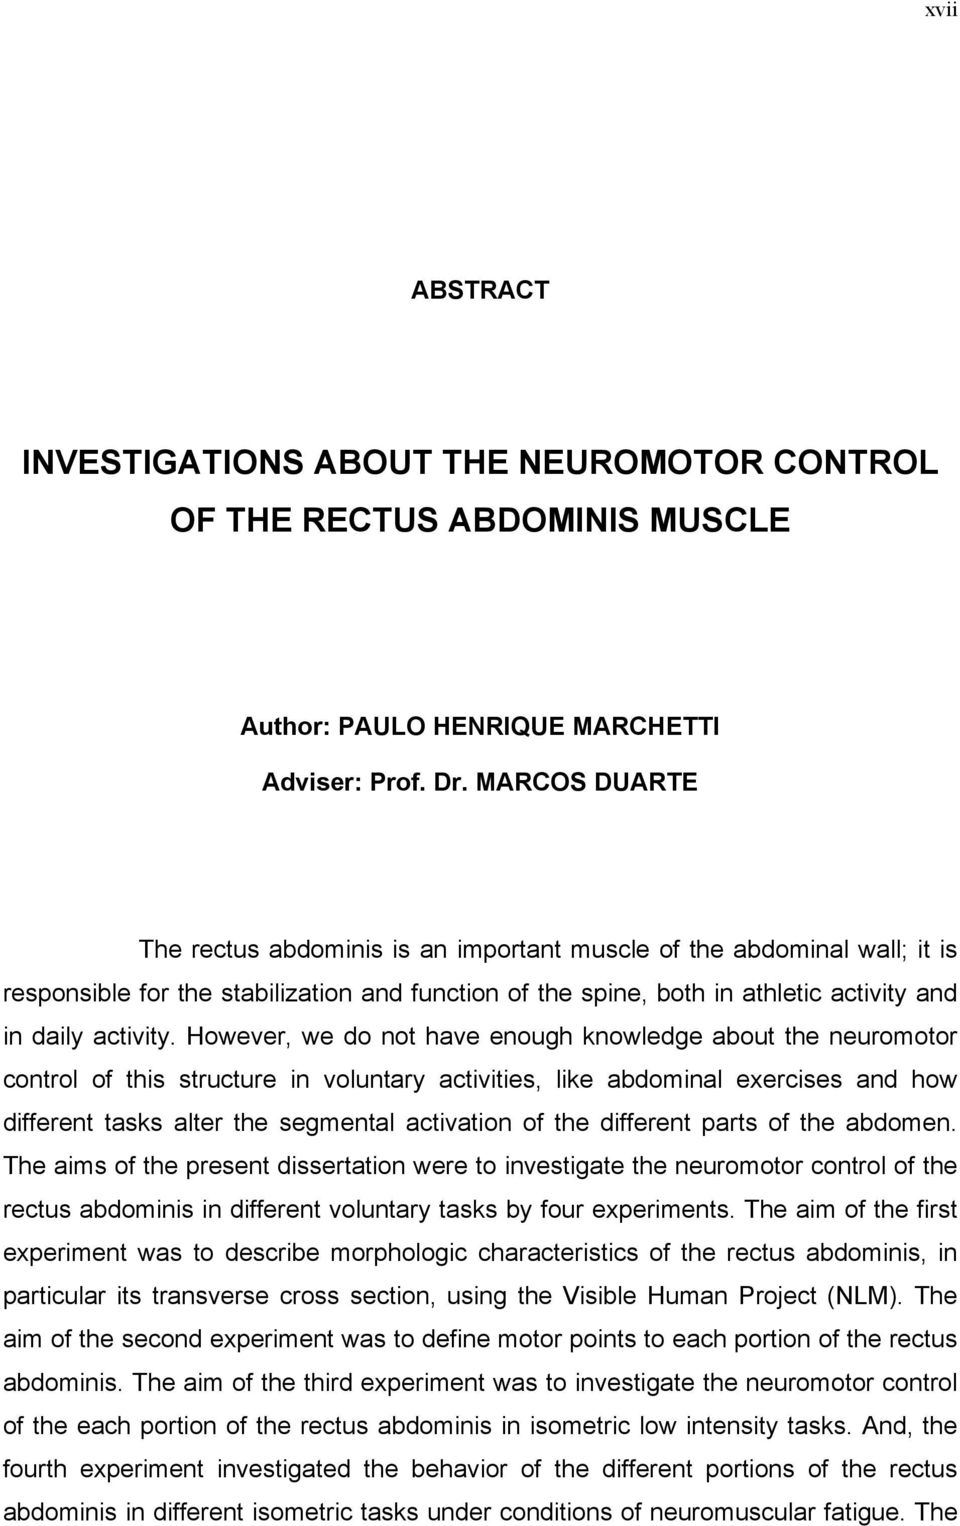 However, we do not have enough knowledge about the neuromotor control of this structure in voluntary activities, like abdominal exercises and how different tasks alter the segmental activation of the